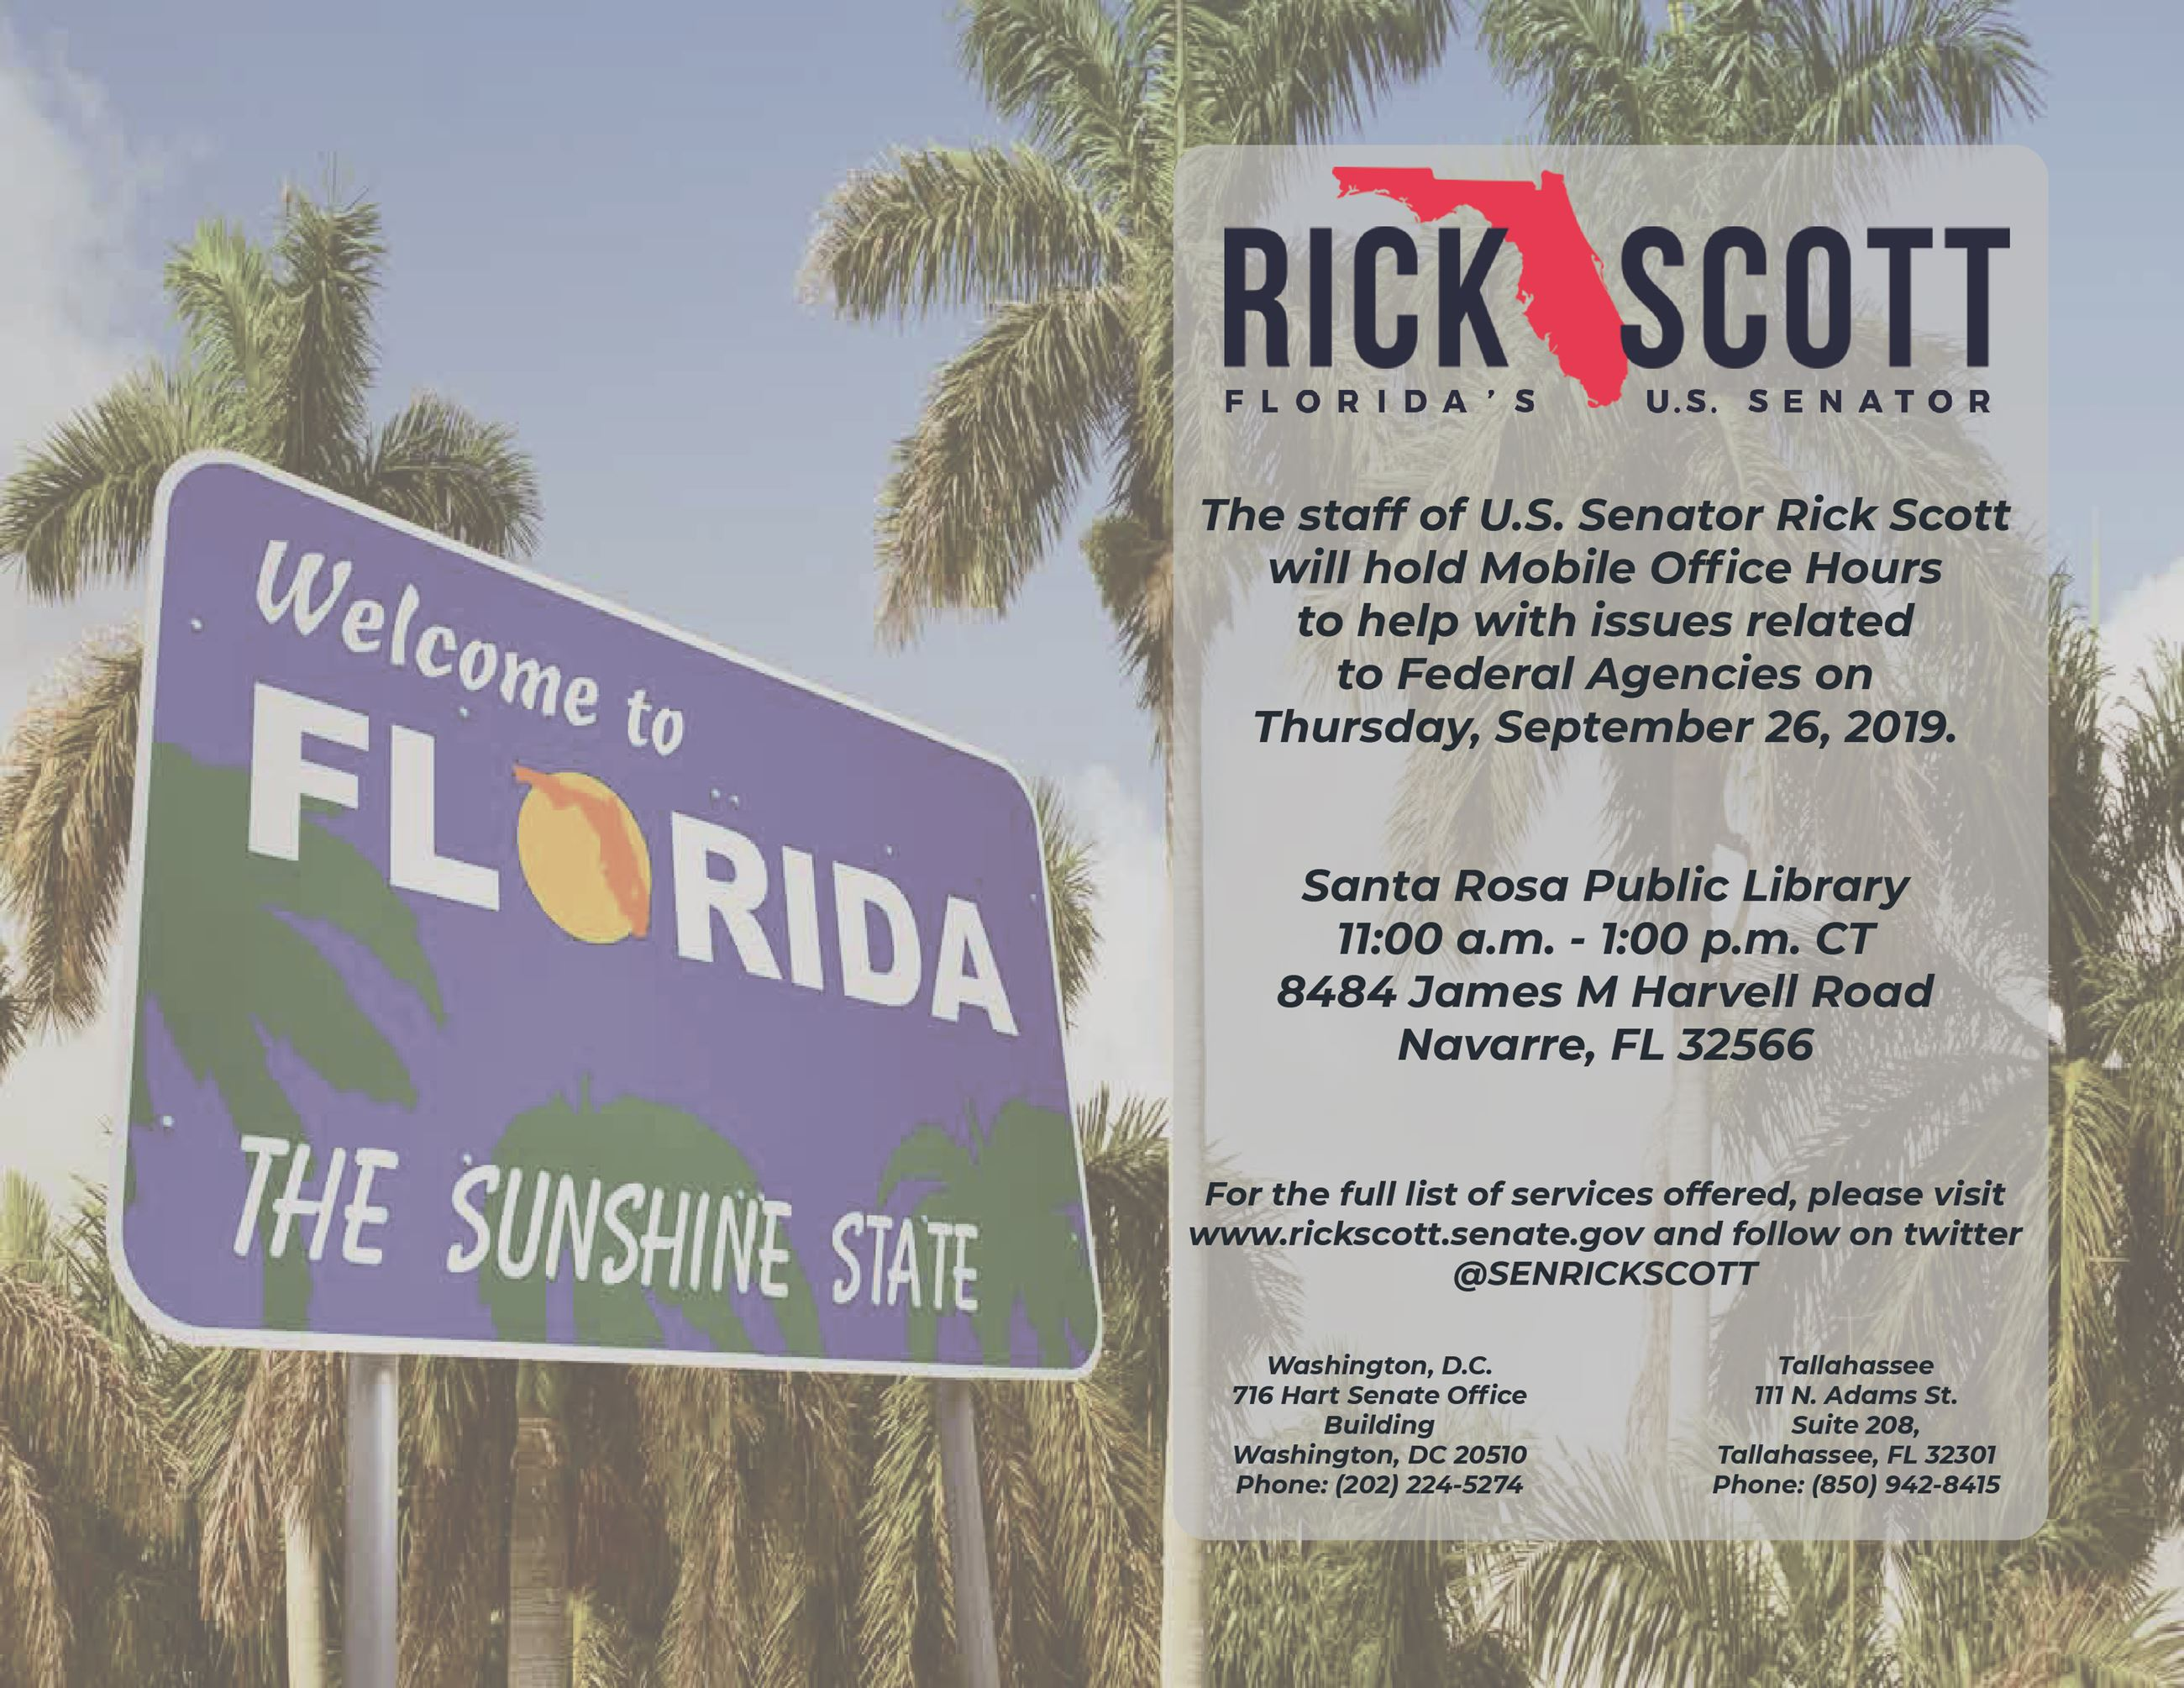 Senator Rick Scott to hold mobile office hours in Navarre, Sept. 26